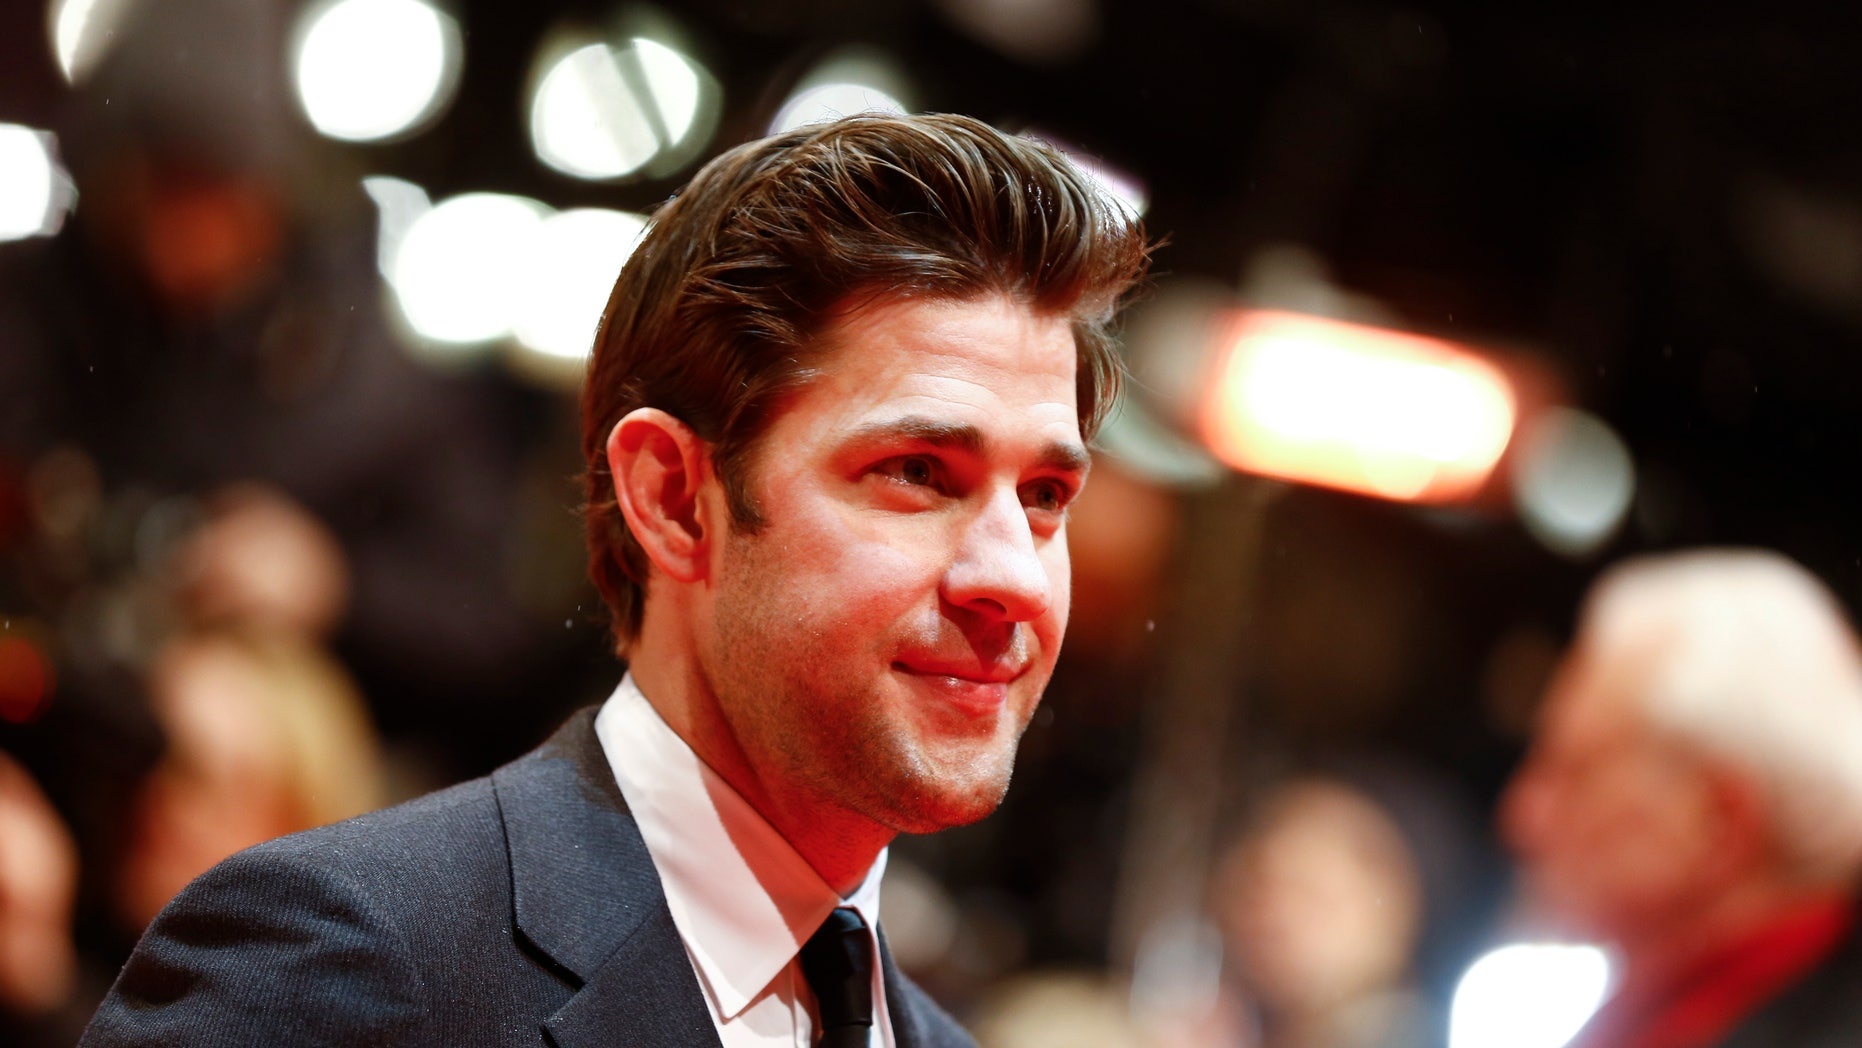 Actor John Krasinski arrives for the screening of the film 'Promised Land' at the 63rd Berlinale International Film Festival in Berlin February 8, 2013.